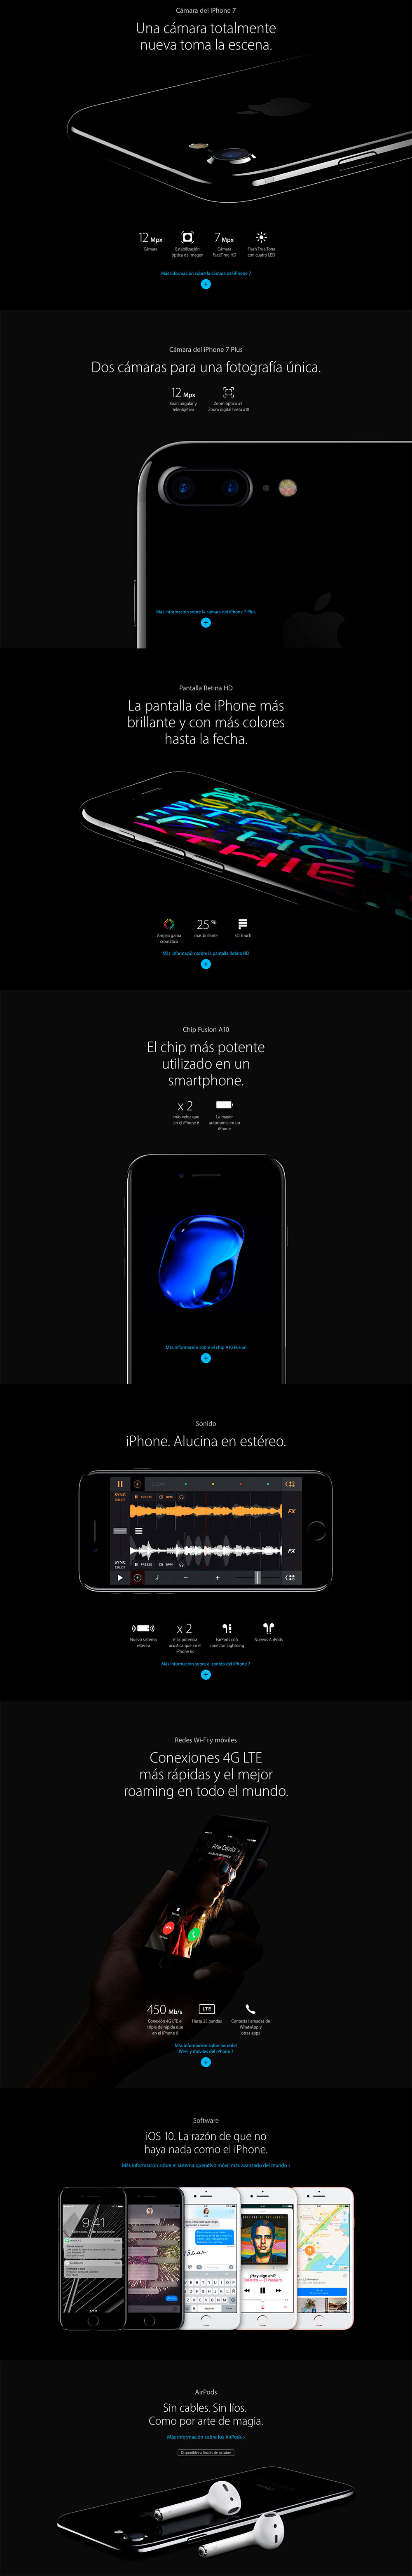 iphone-7-todo